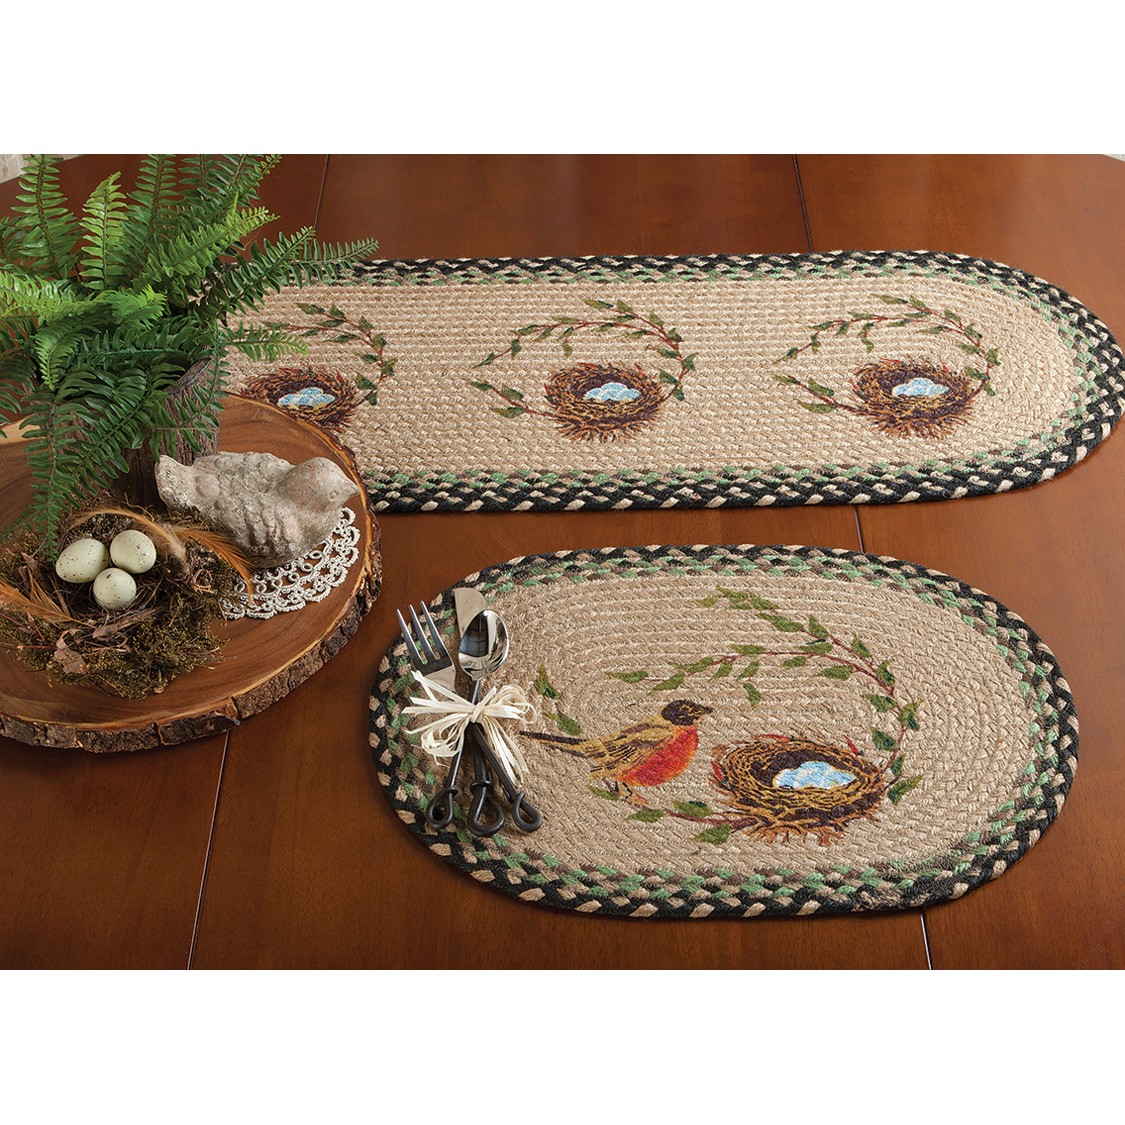 bird nest jute braided tabletop accents table accent placemat cast aluminum side mid century small ethan allen leather furniture metal floor reducer folding ikea square mirrored